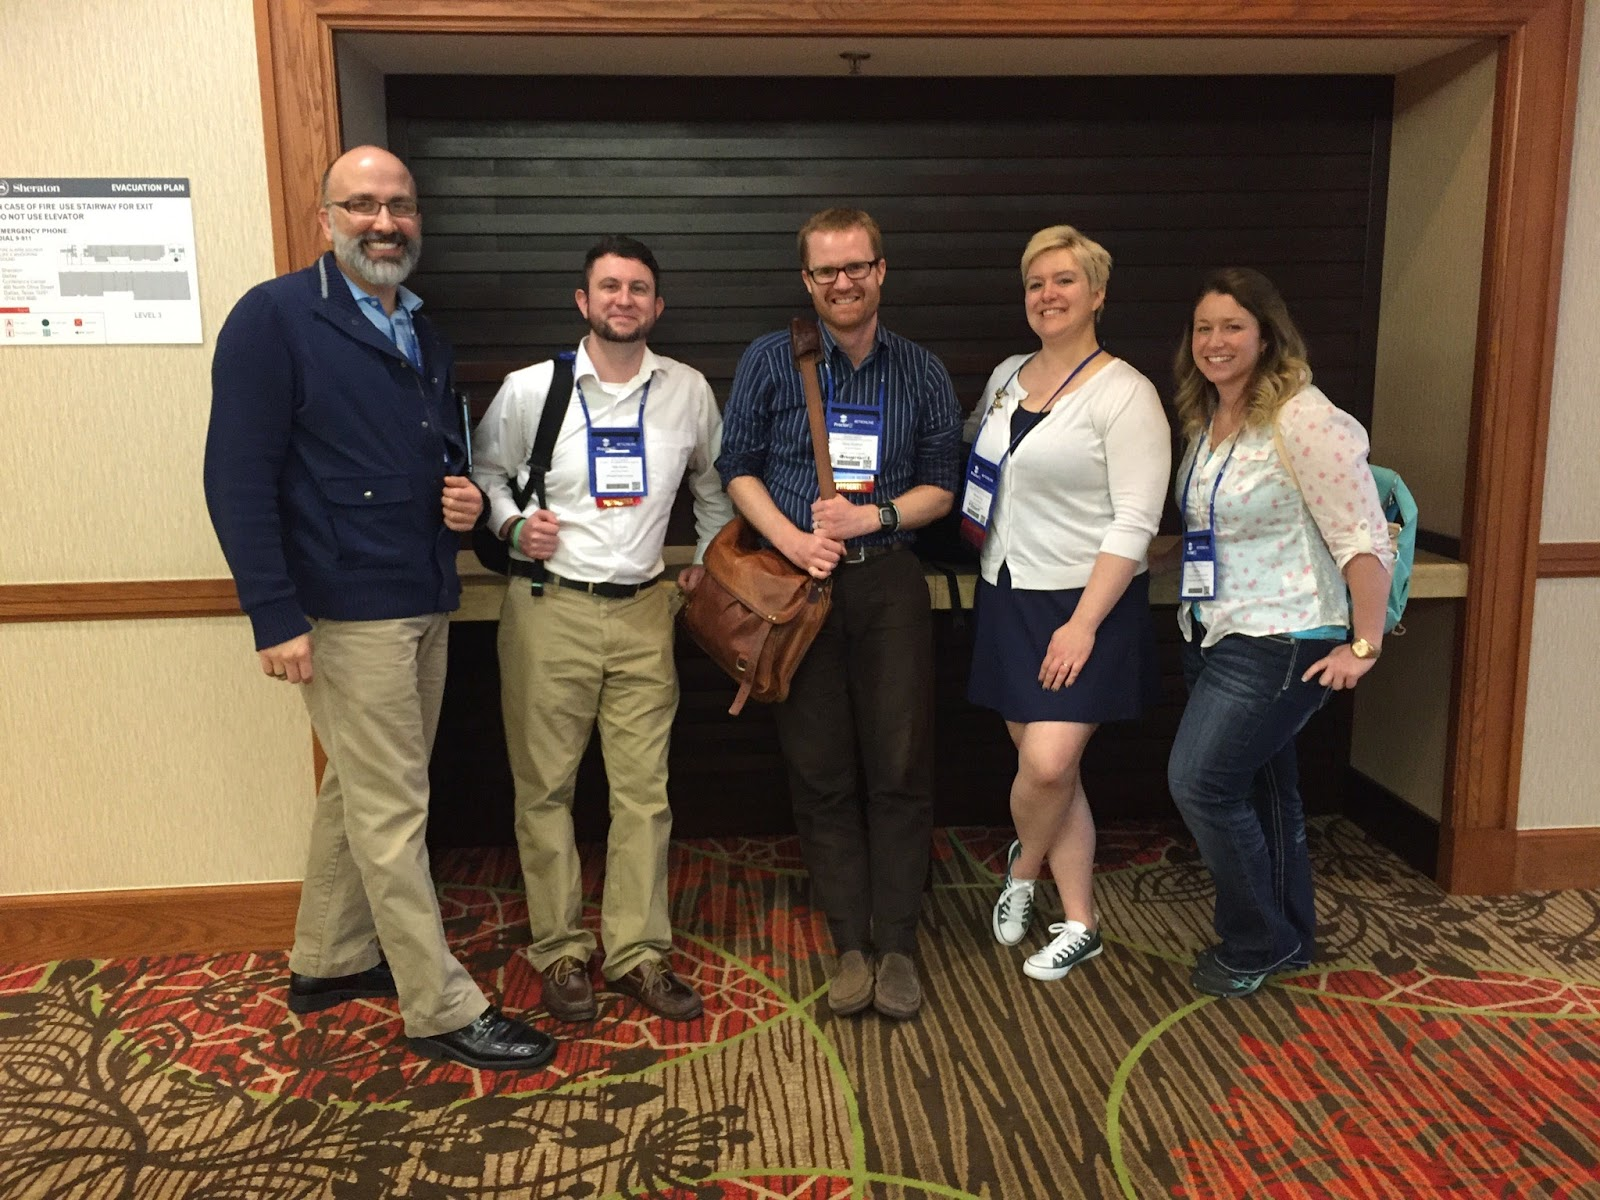 MSU Group Picture at #ET4online 2015